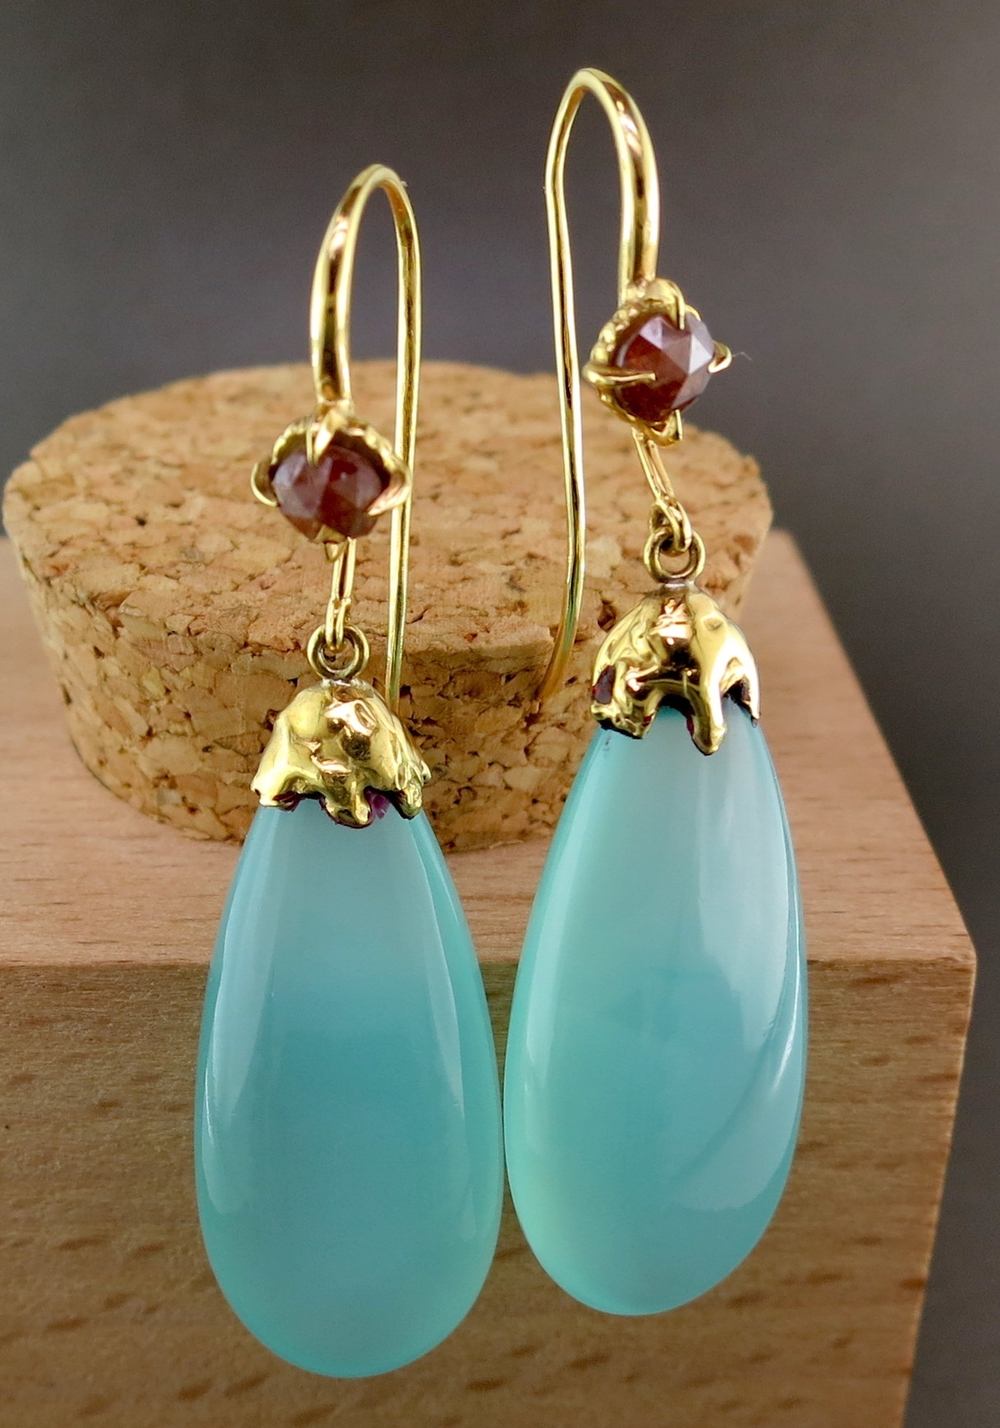 18 Karat Yellow Gold and Chalcedony Onyx Dangle Earrings, accented with Raw Diamonds